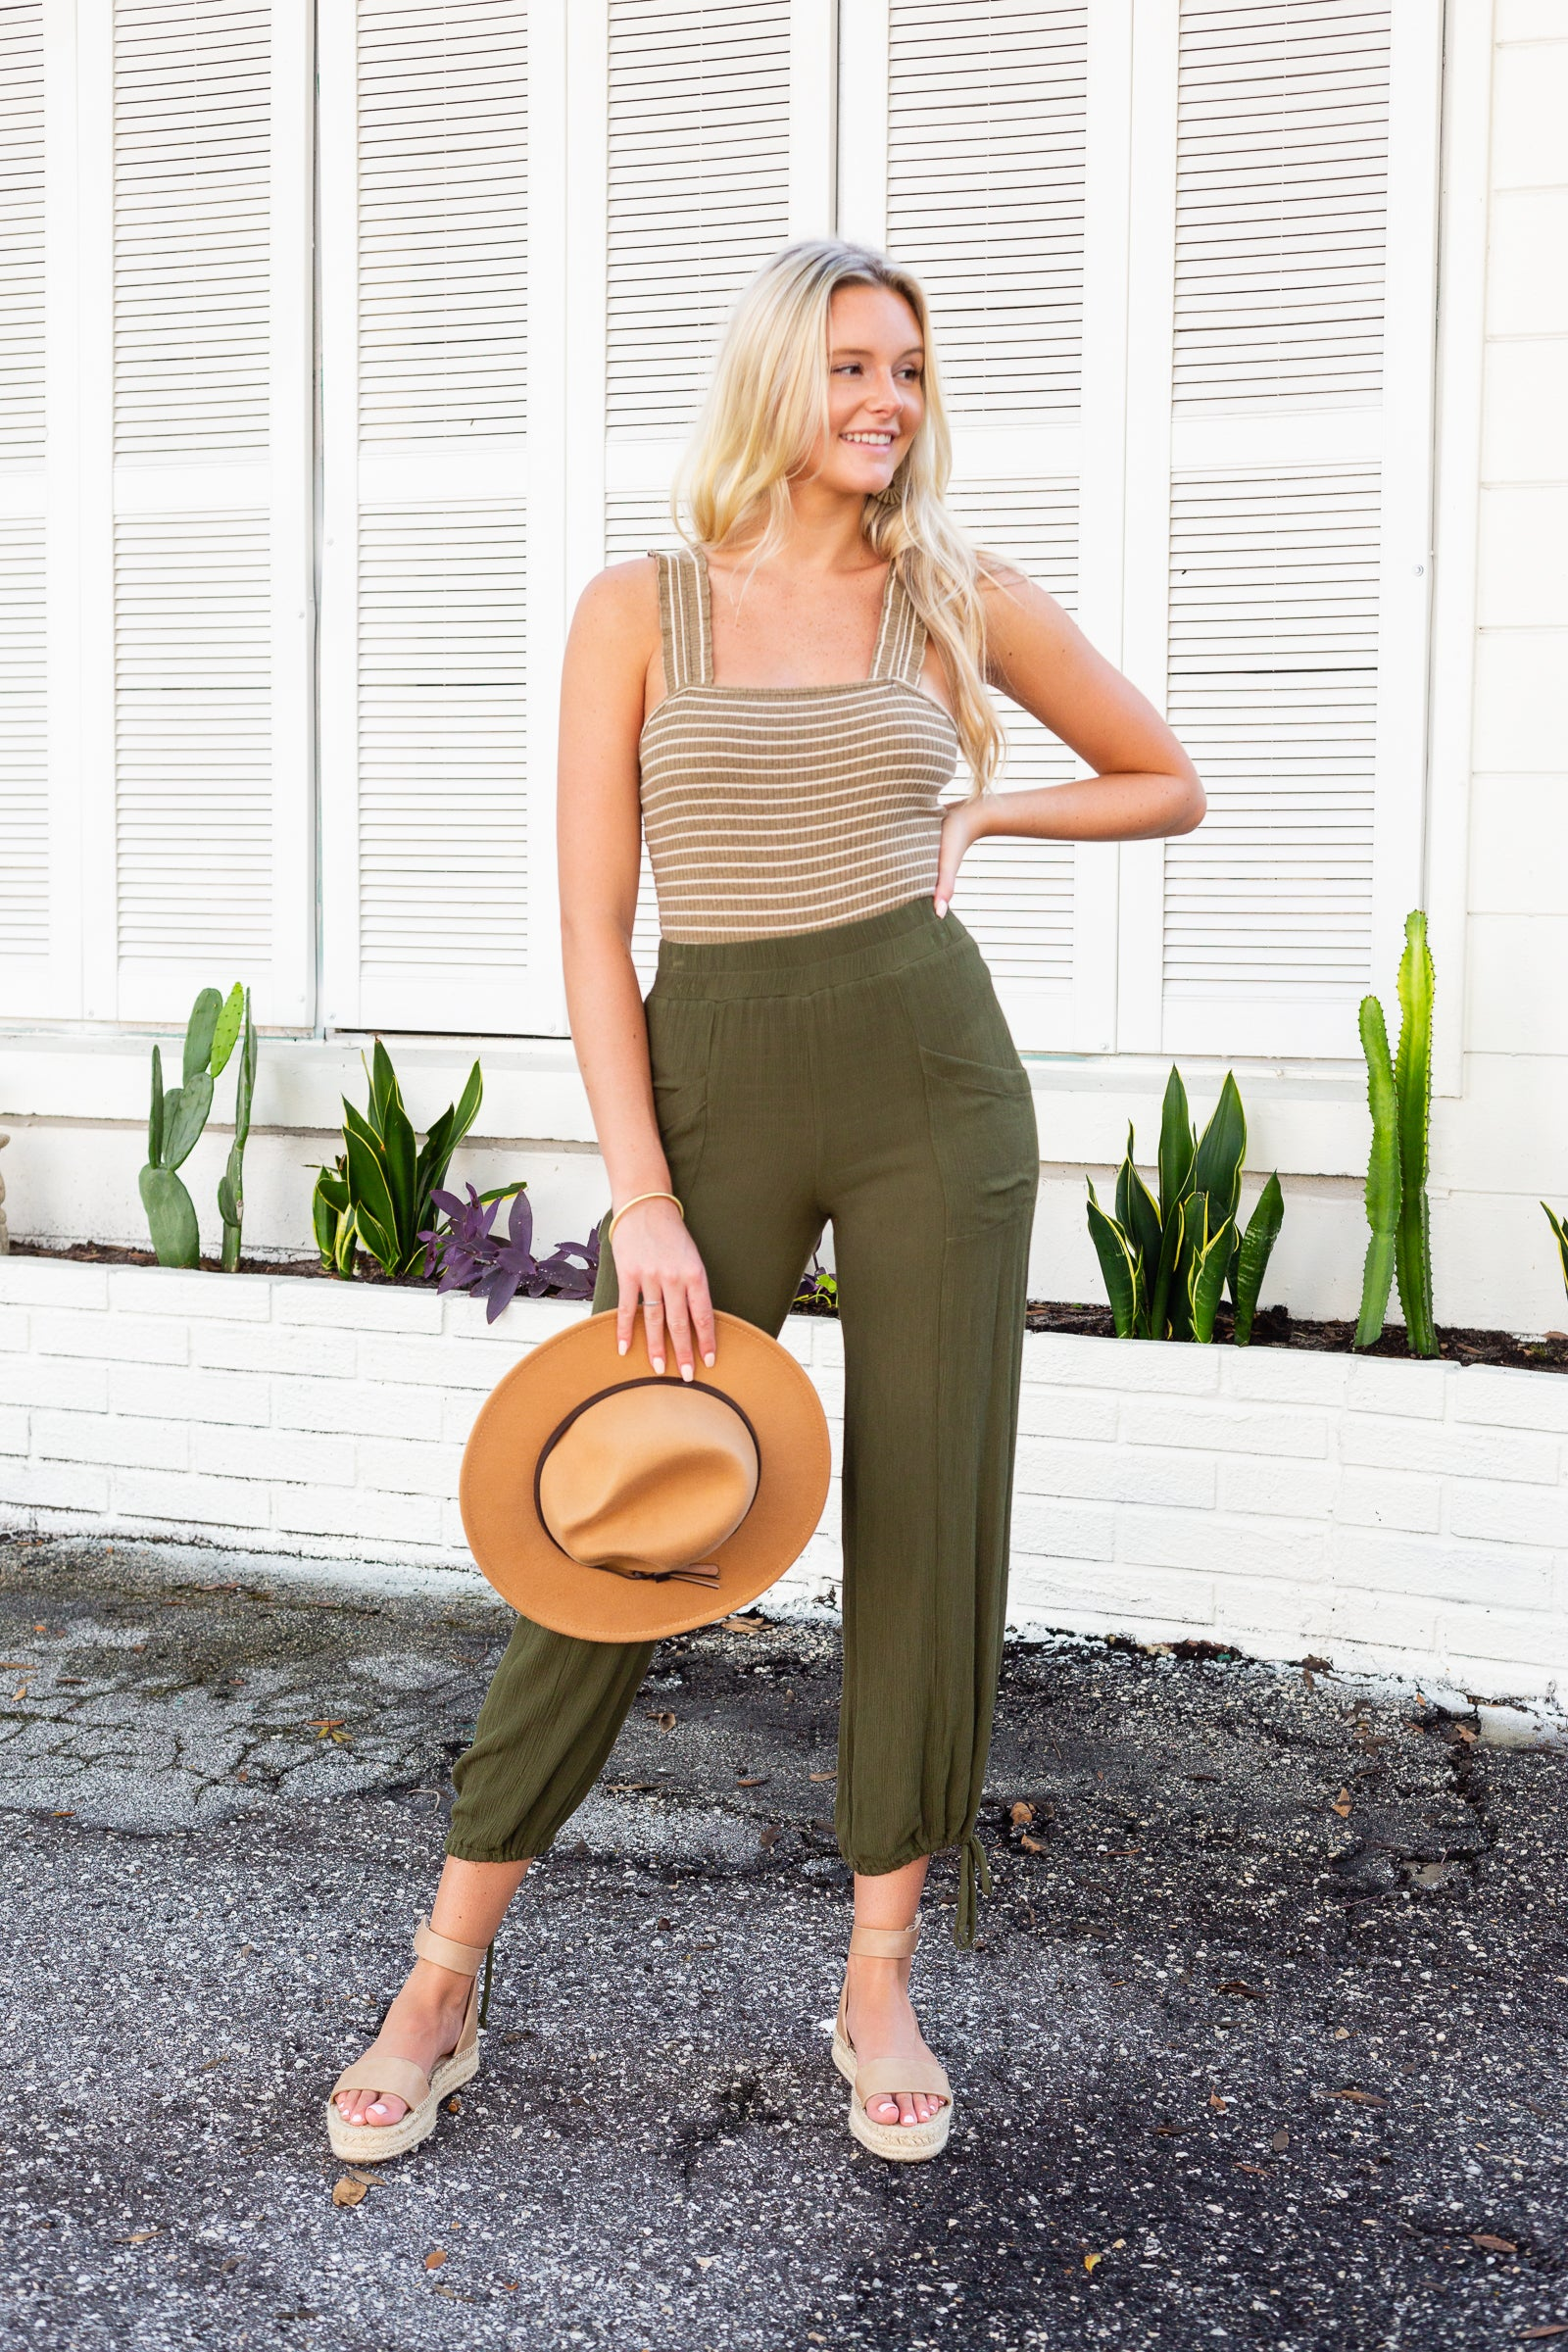 These pants have an elastic waistband and lead to a loose and relaxed fit balloon pants with front pockets and taper into comfortable pant legs with drawstring tied cuffs at the ankles.